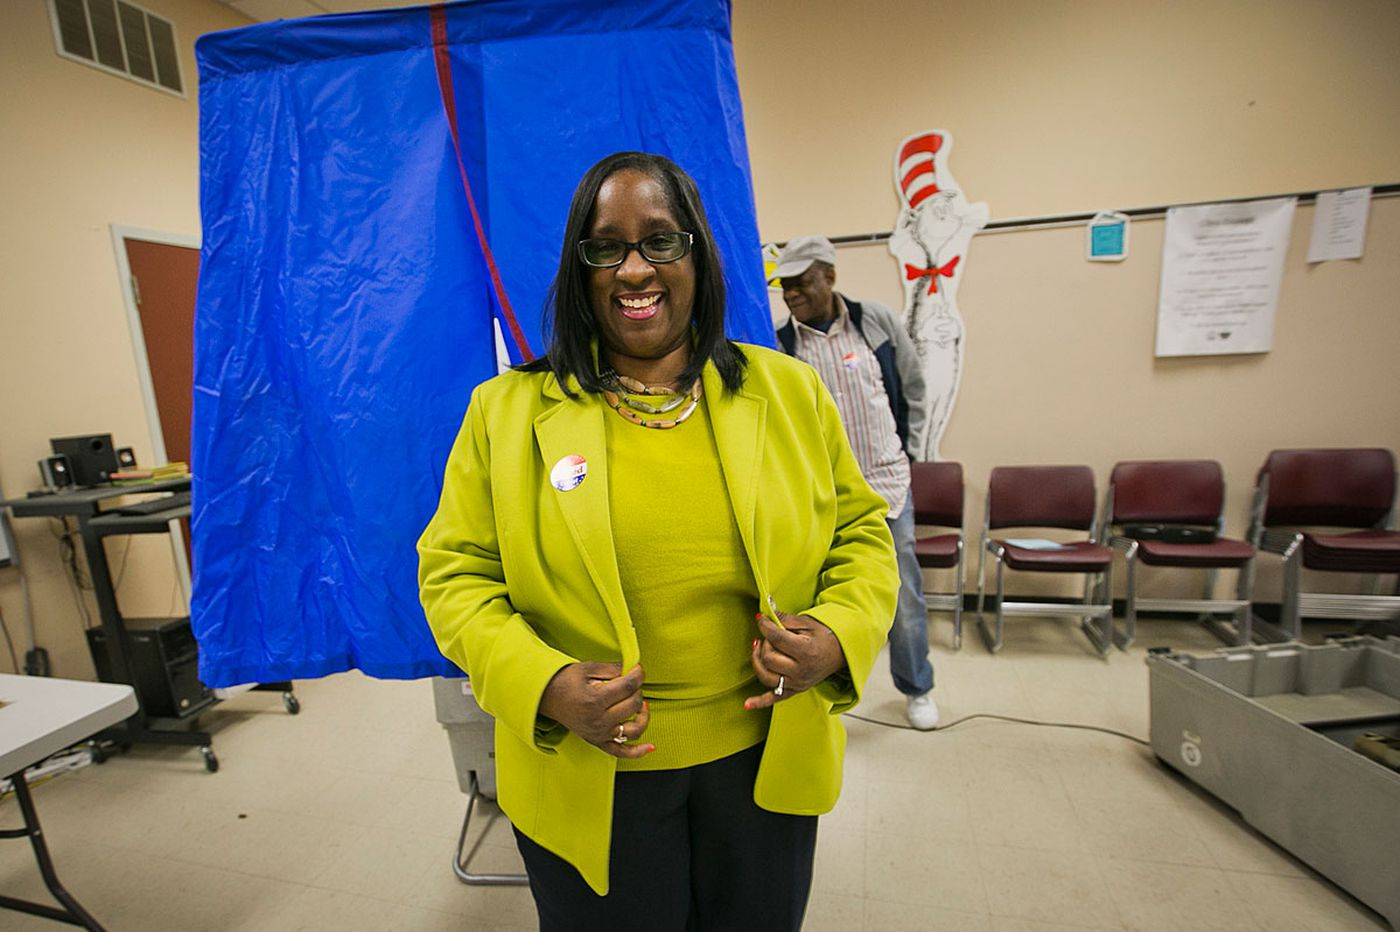 Democrats win 2 special House elections in Phila.